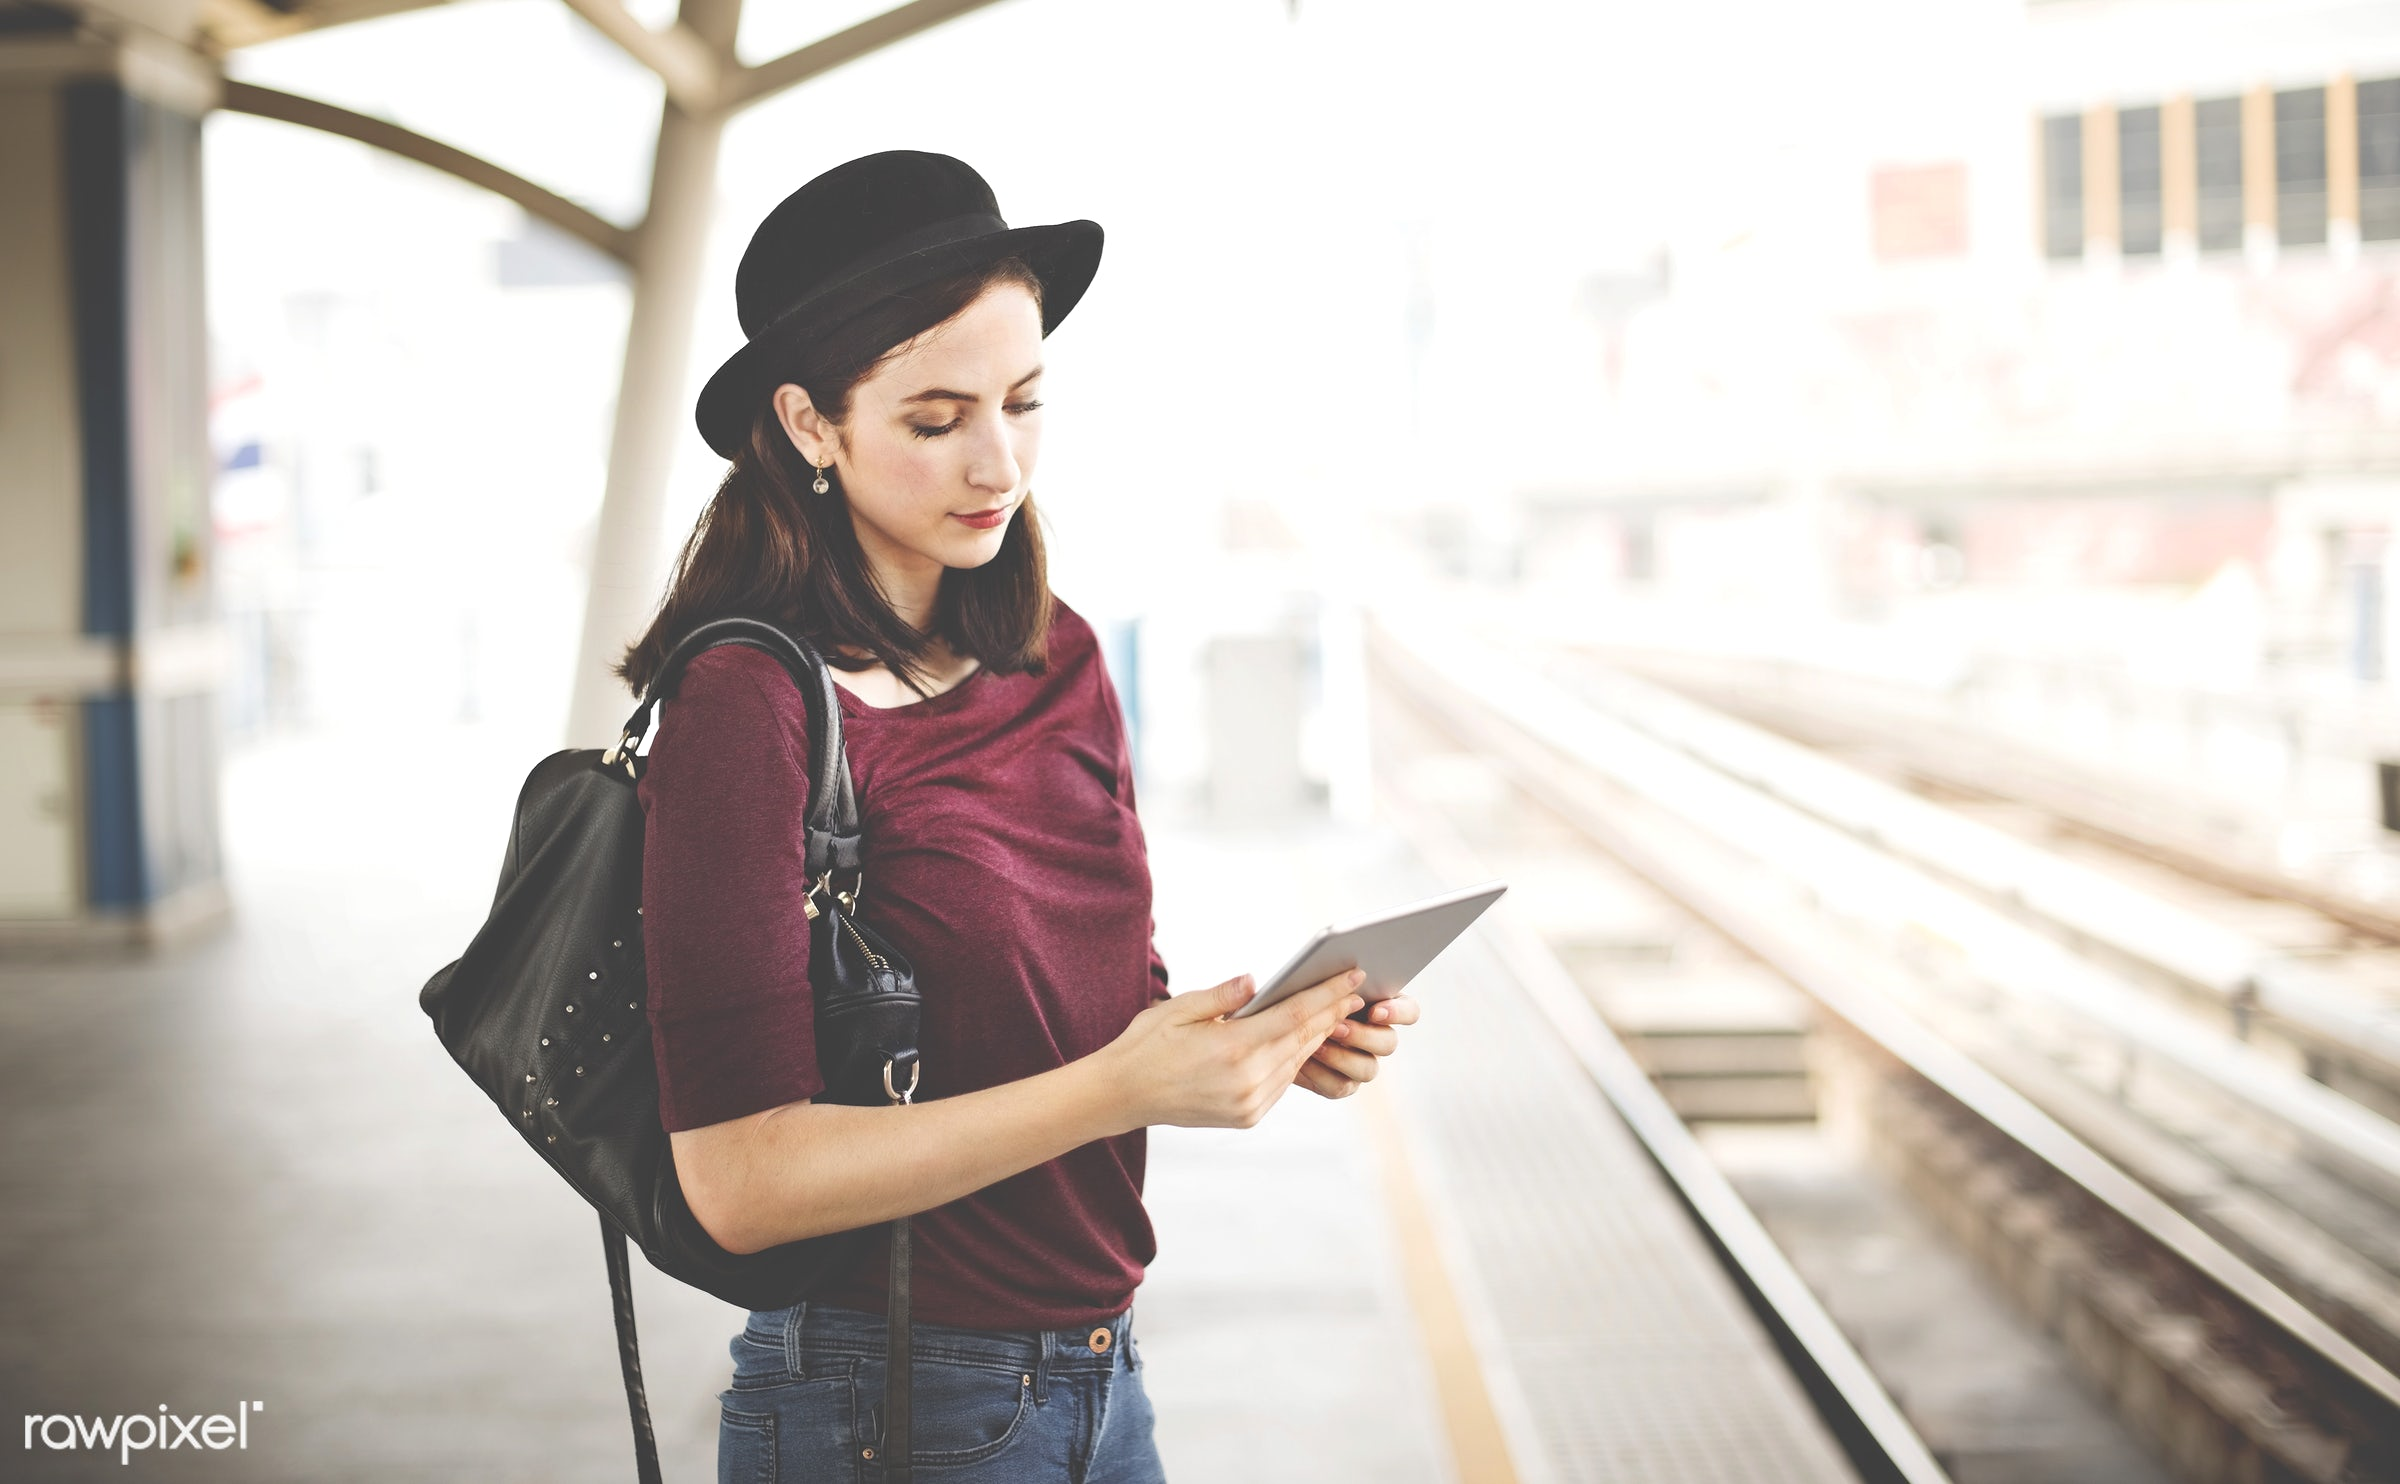 holding, lifestyles, casual, city, city life, commuter, connection, destination, device, digital tablet, internet, location...